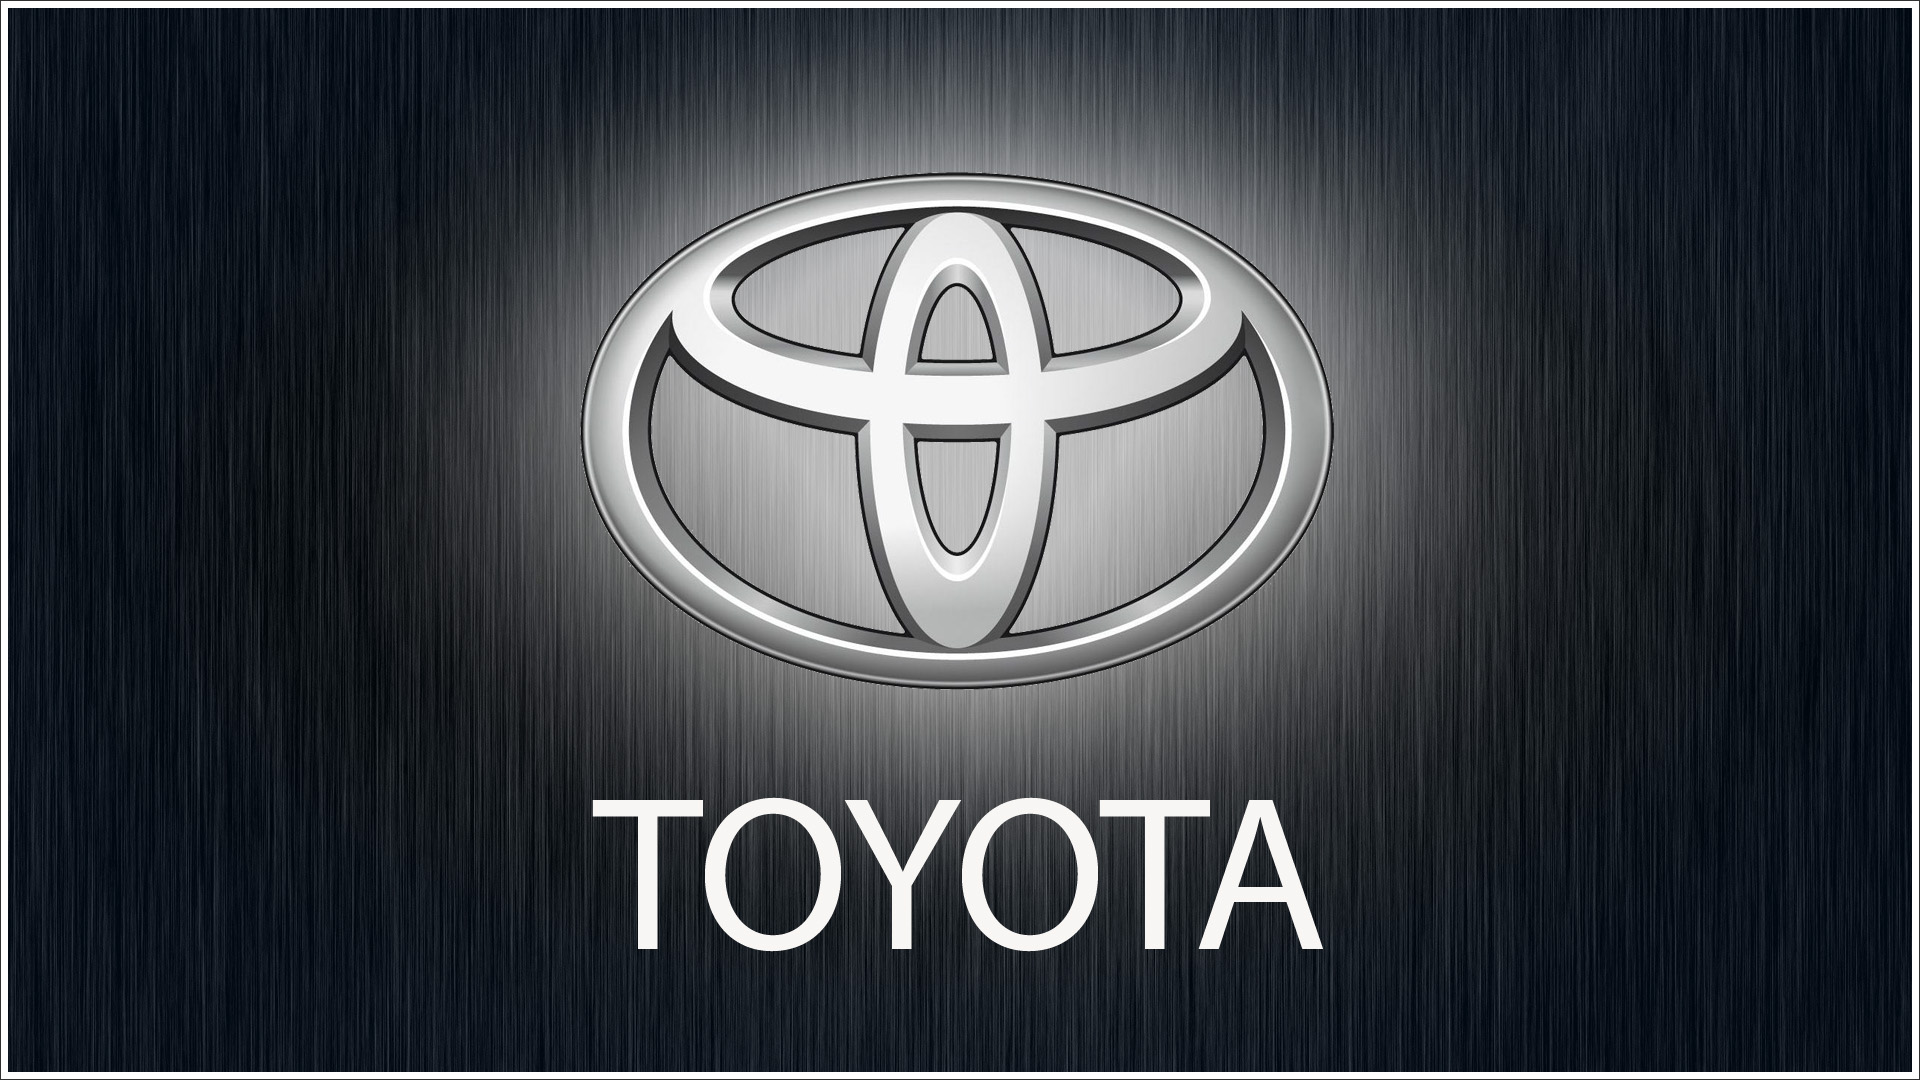 Toyota Logo Meaning and History latest models World 1920x1080